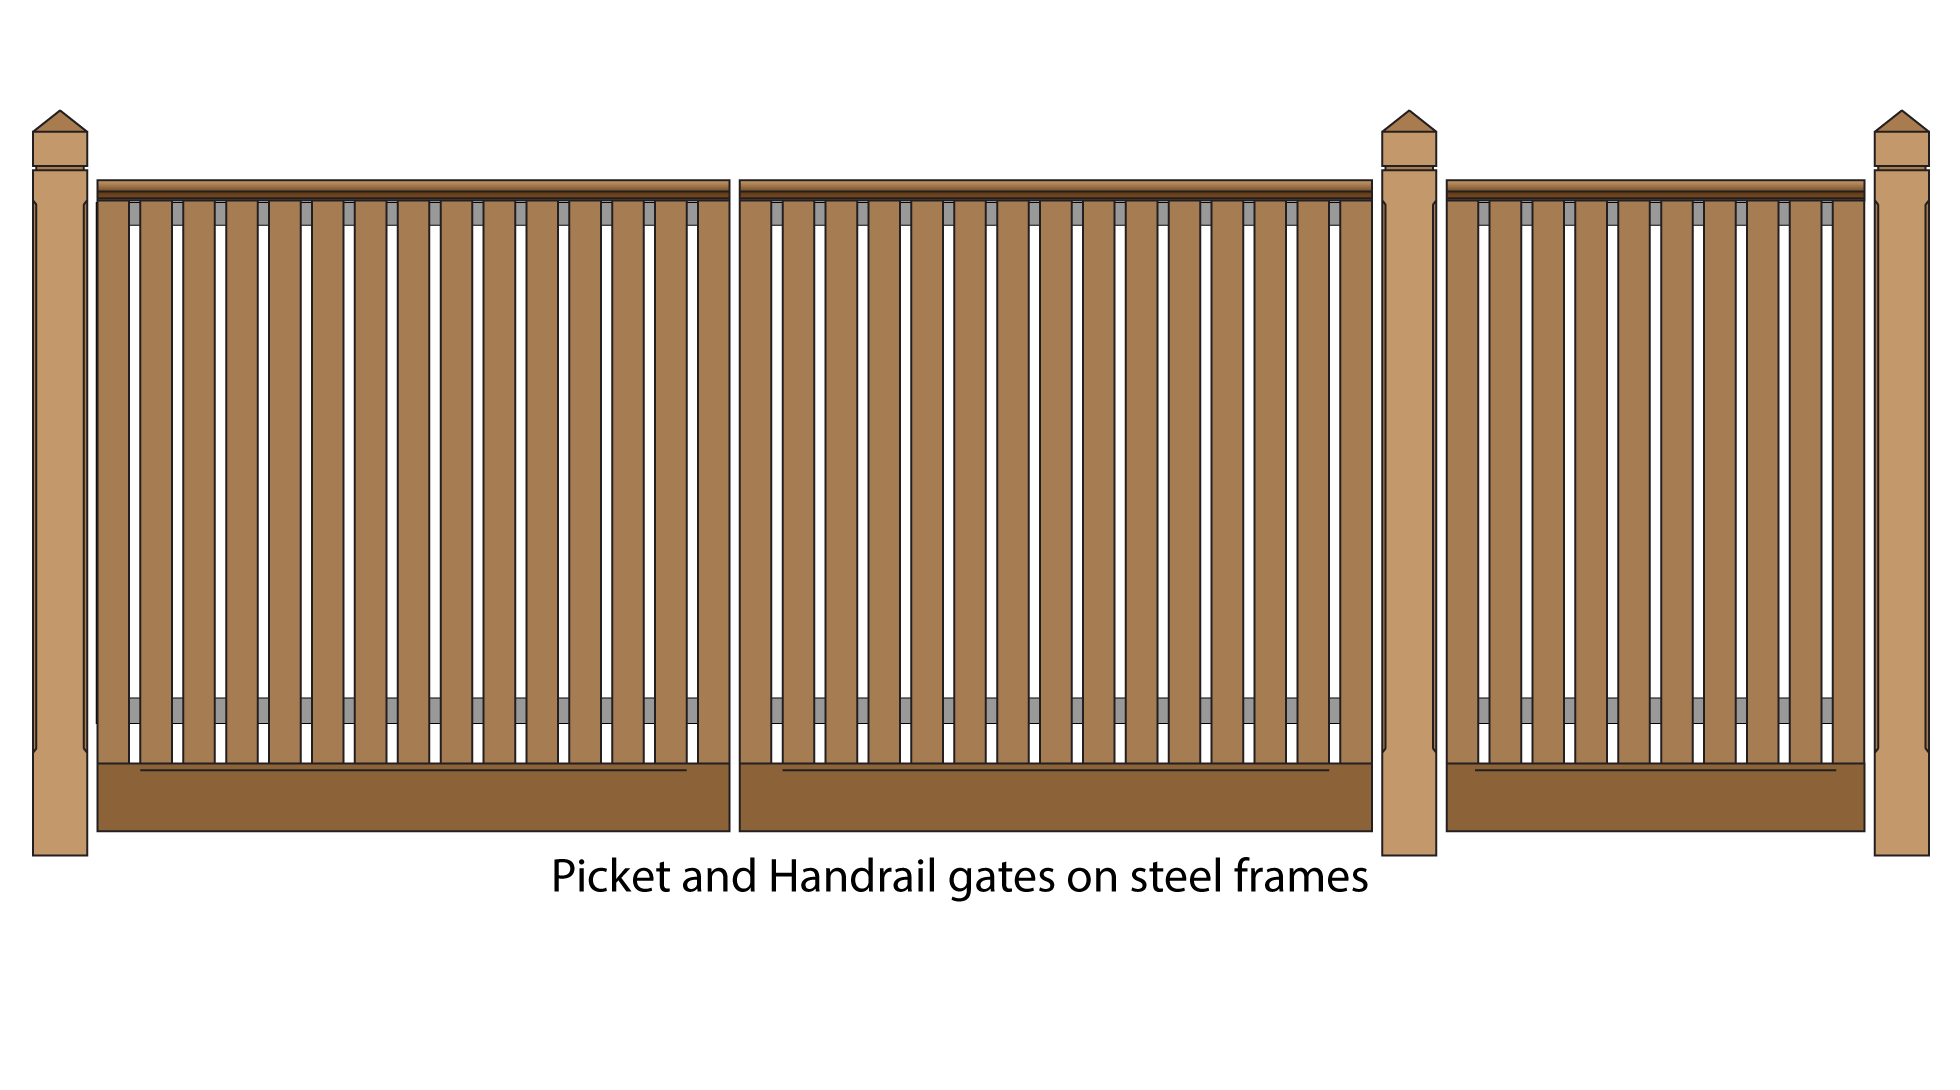 Picket and handrail gates